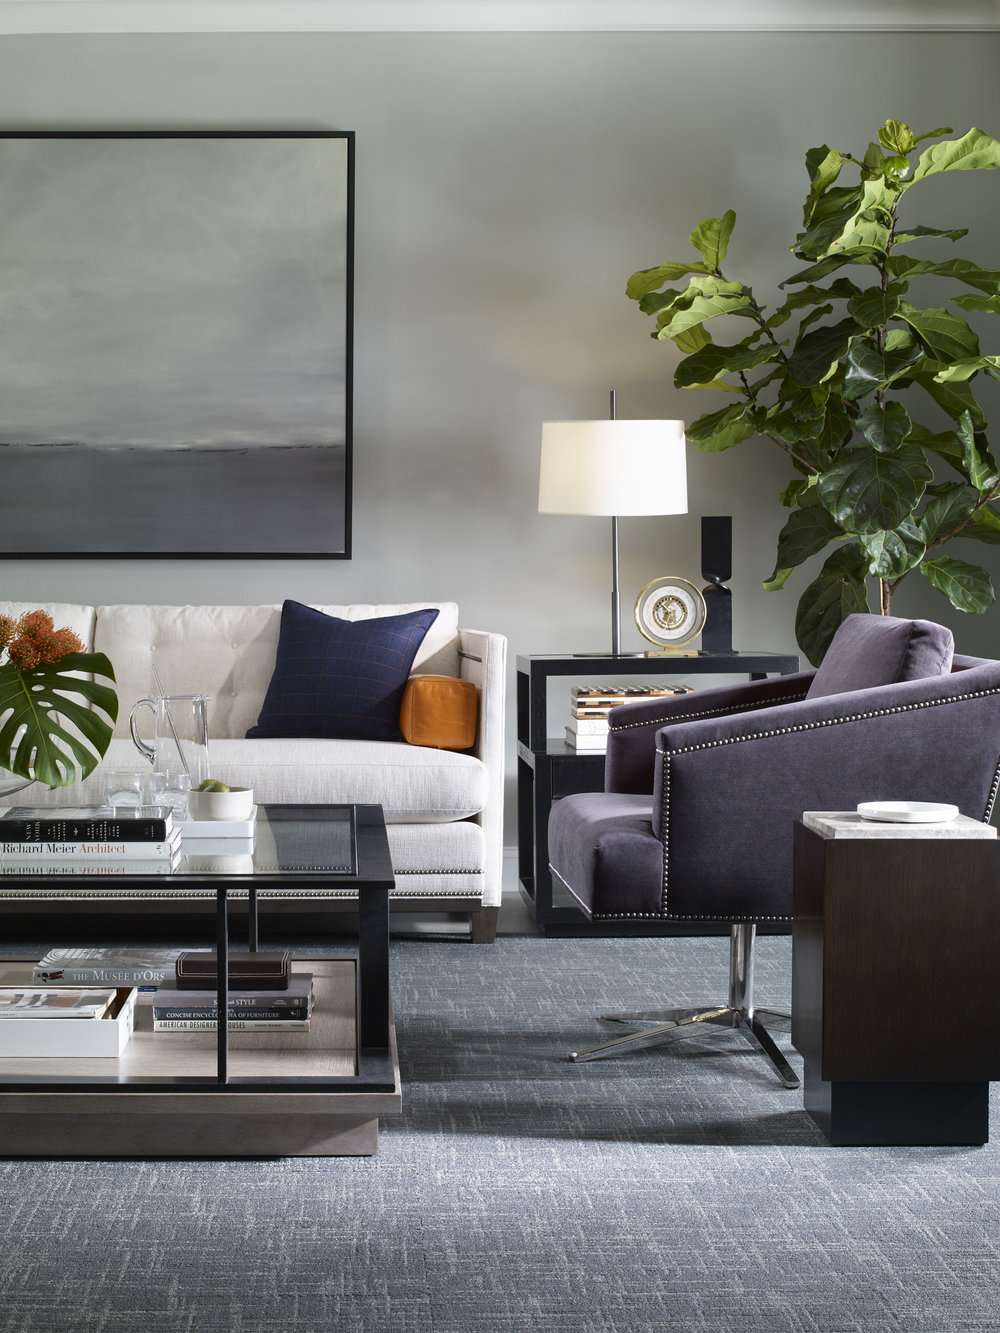 To The Trade - From furniture to rugs, art to accents, they span a vast range of styles and price points, but each is an item you'll be proud to present to your clients. Exclusive for design professionals.